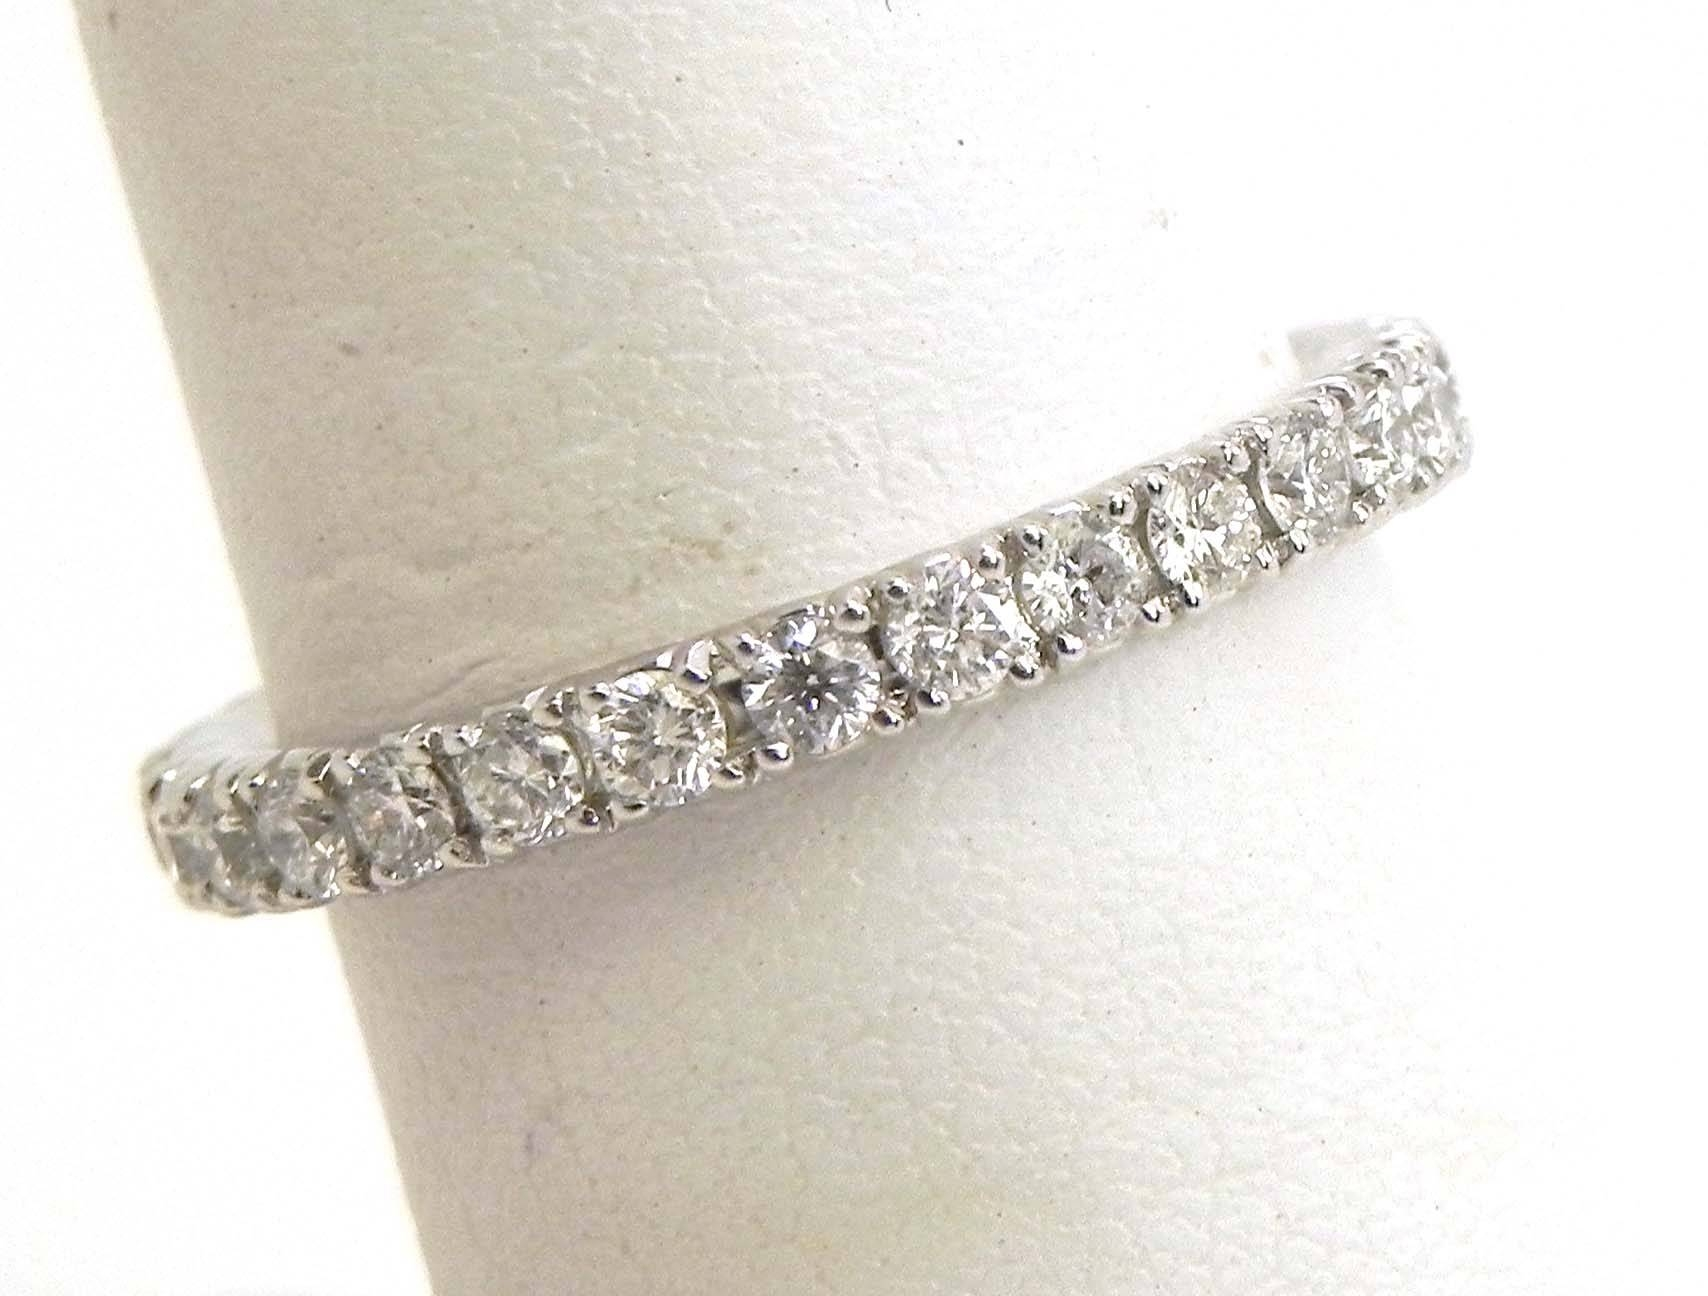 Ladies 18K White Gold Diamonds Eternity Wedding Band Ring | Bright Within Most Recent Eternity Wedding Bands (Gallery 7 of 15)